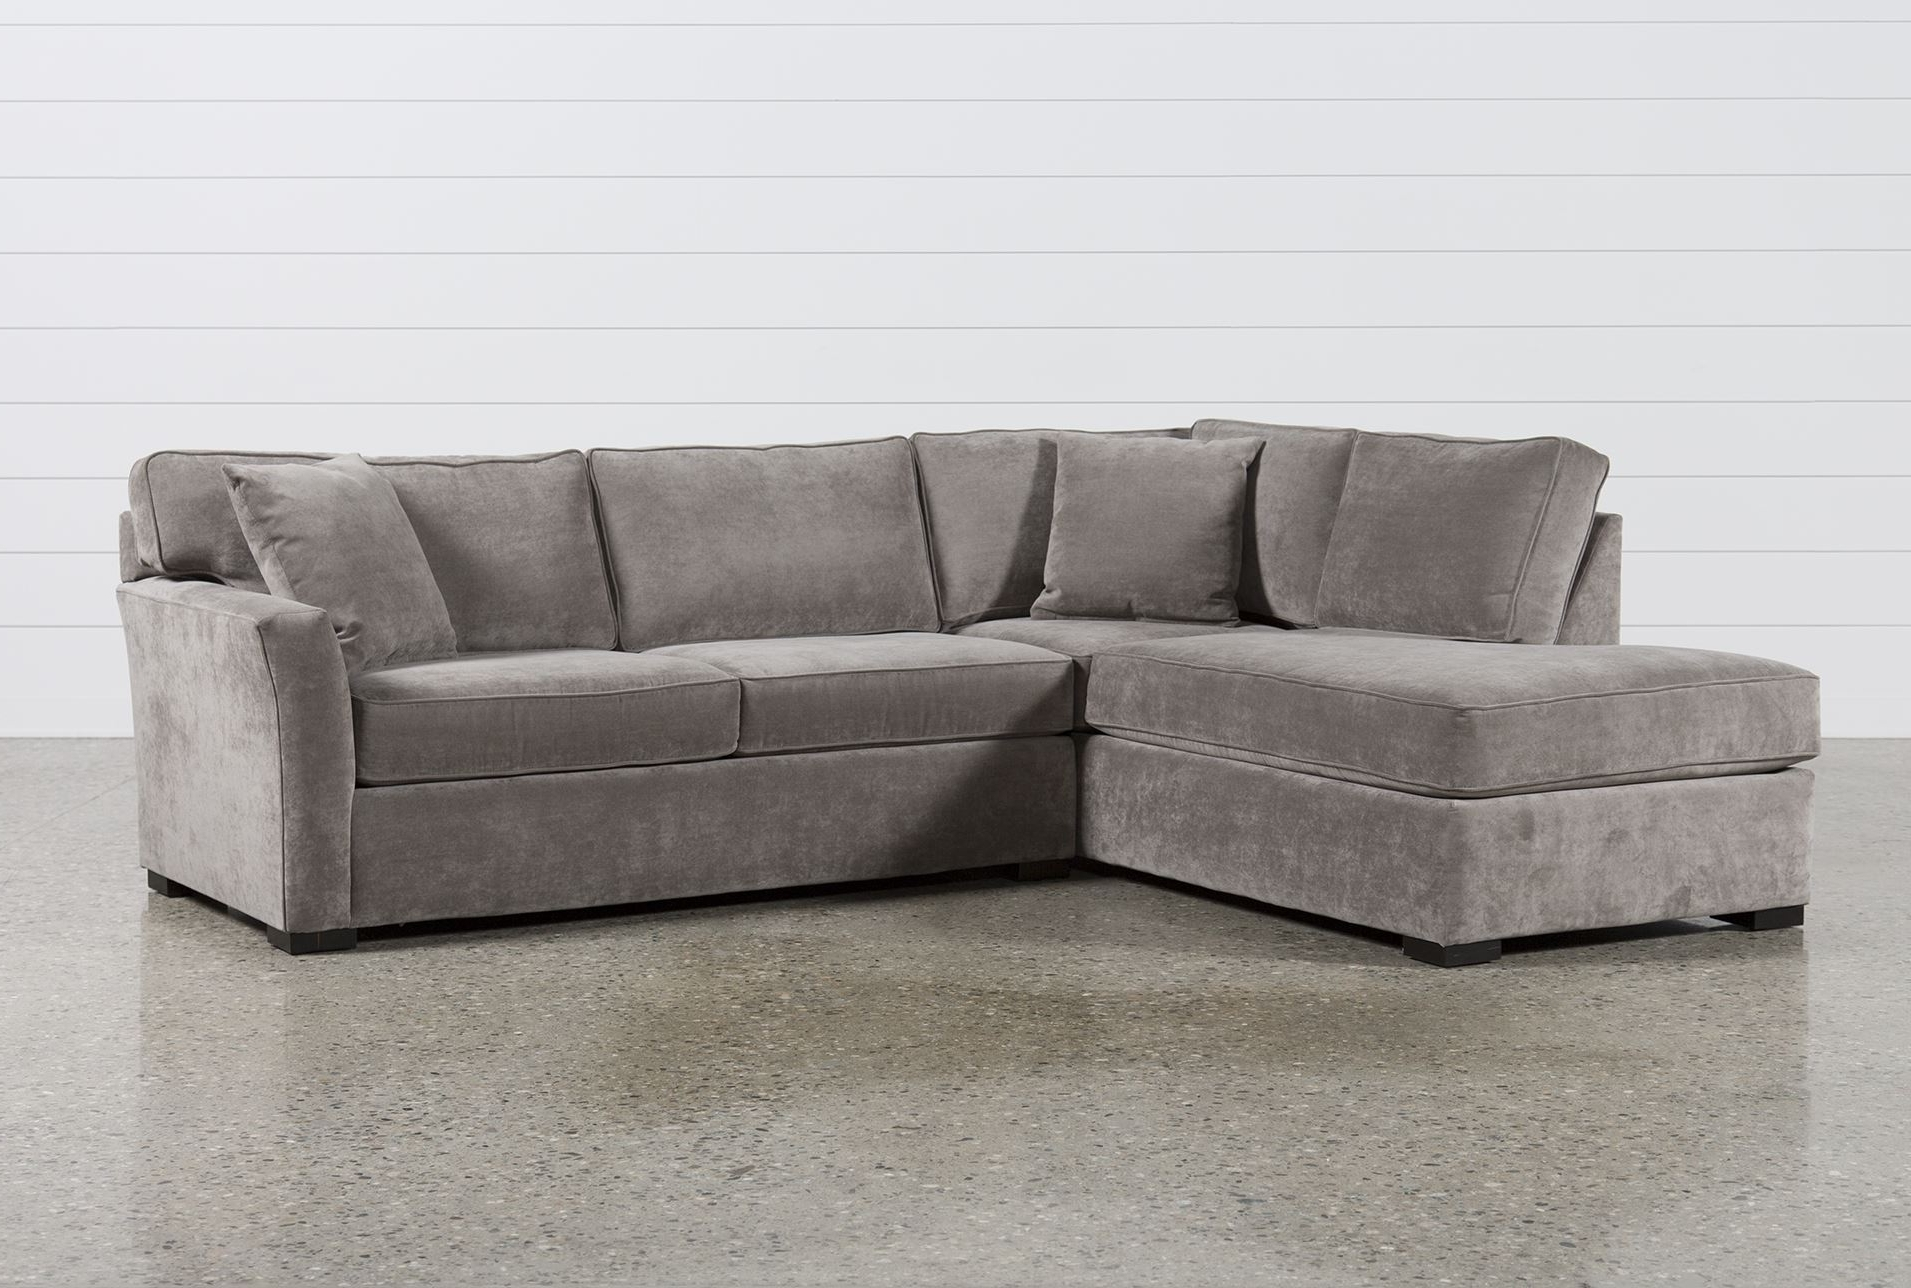 Living Spaces Sectional Sofas Within Well Known Aspen 2 Piece Sleeper Sectional W/laf Chaise (View 11 of 15)